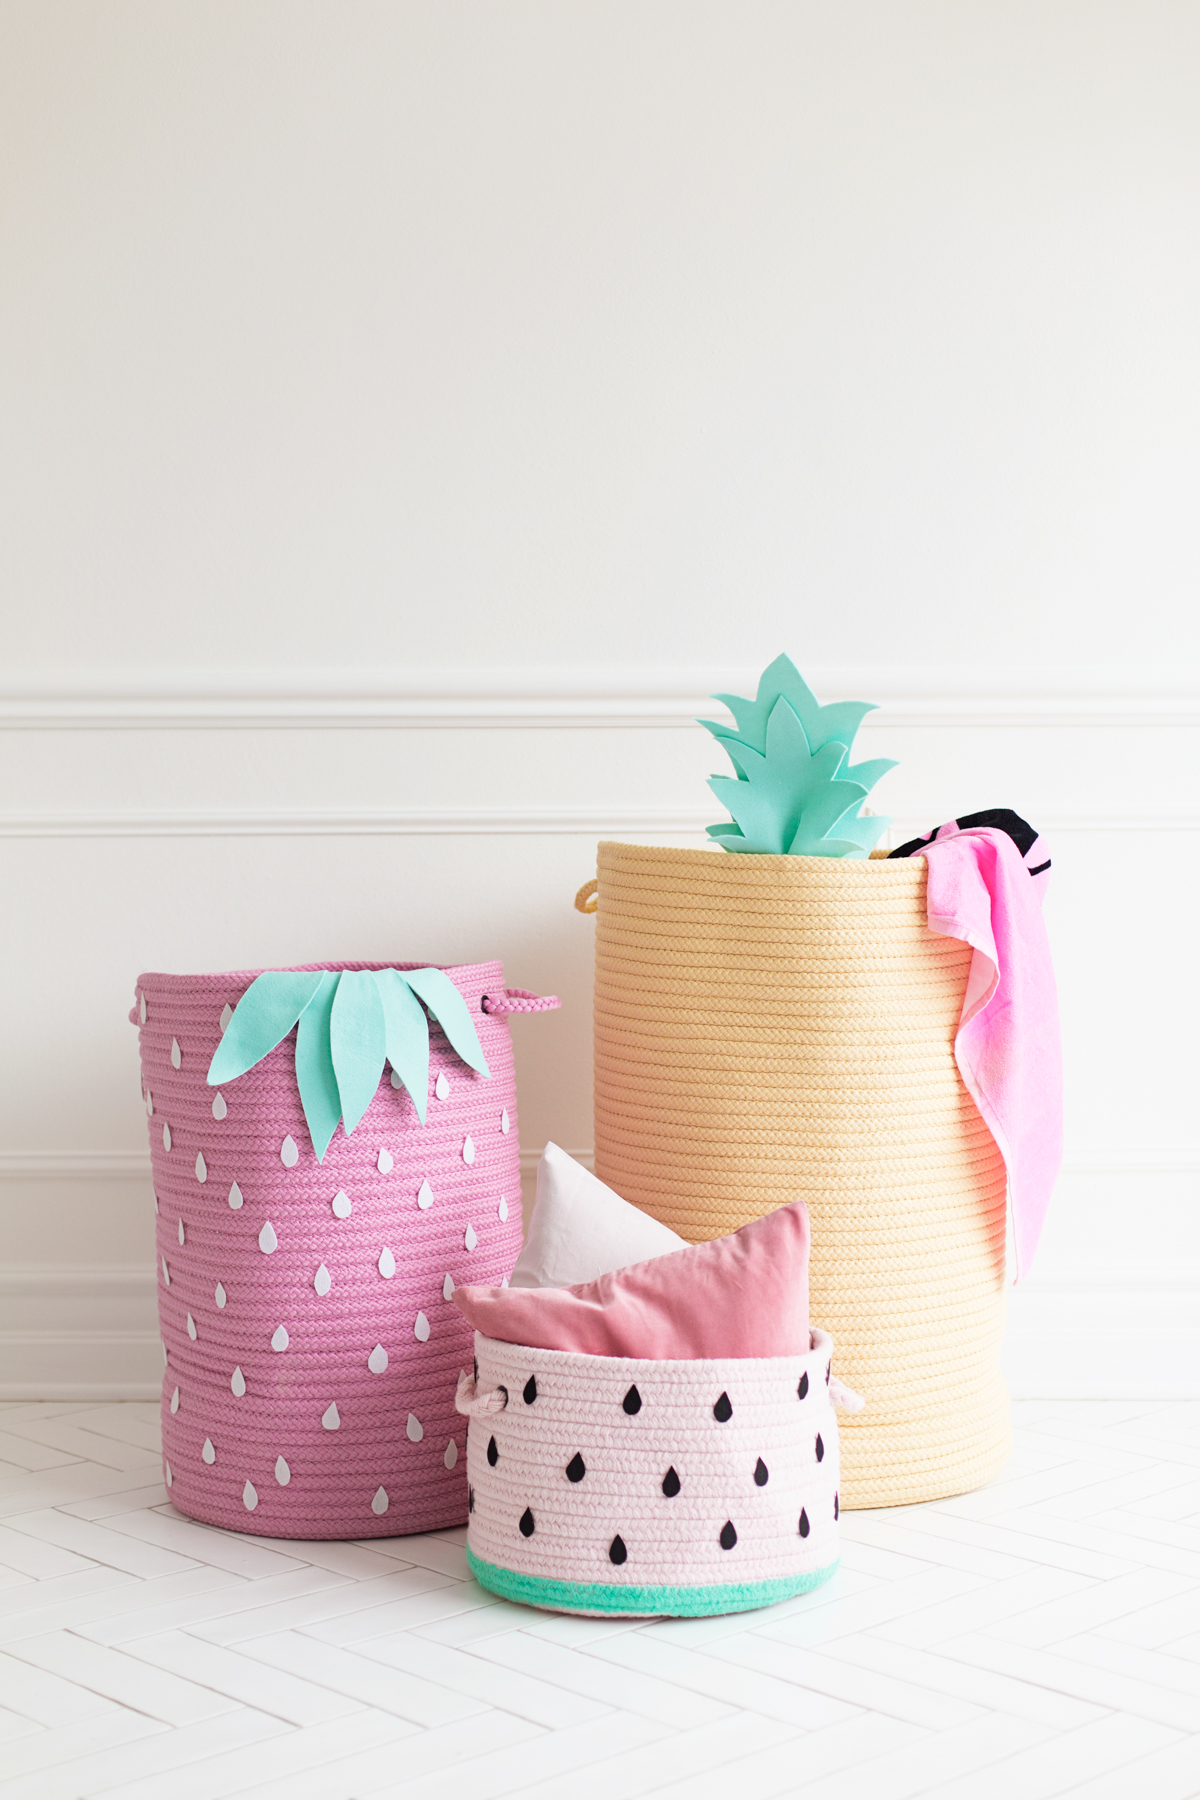 DIY colorful fruity baskets of rope